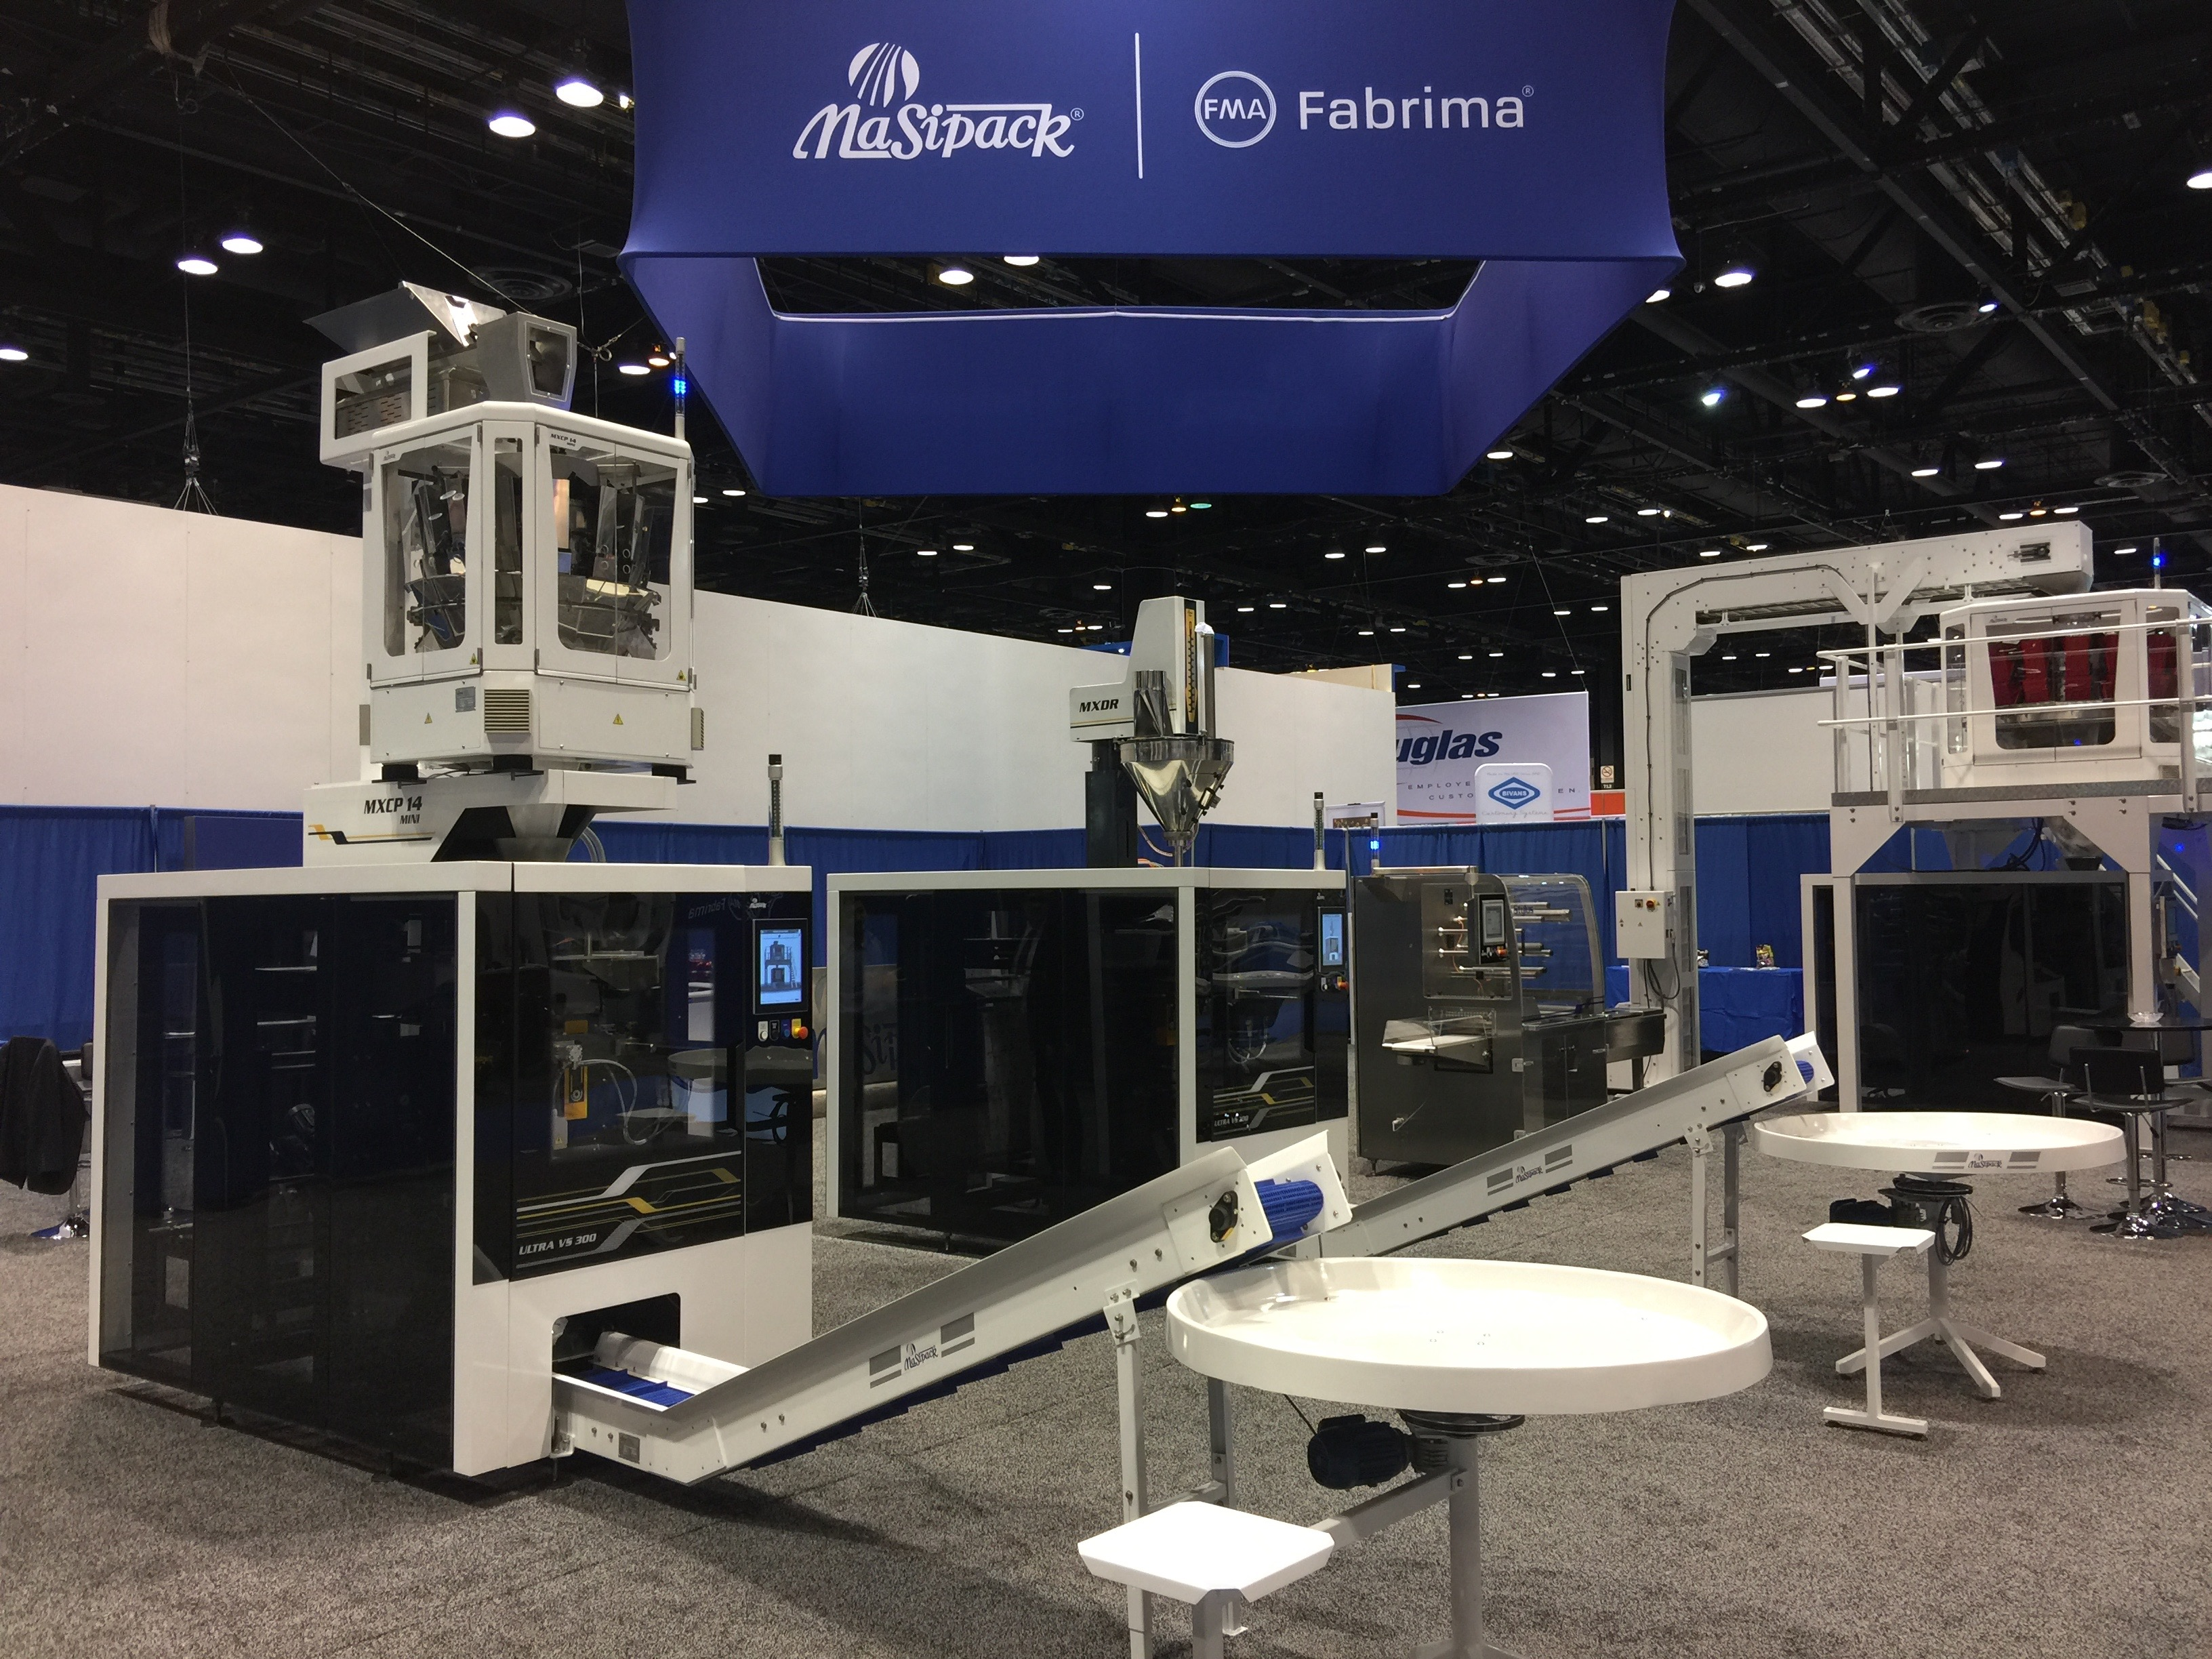 PackExpoImages11